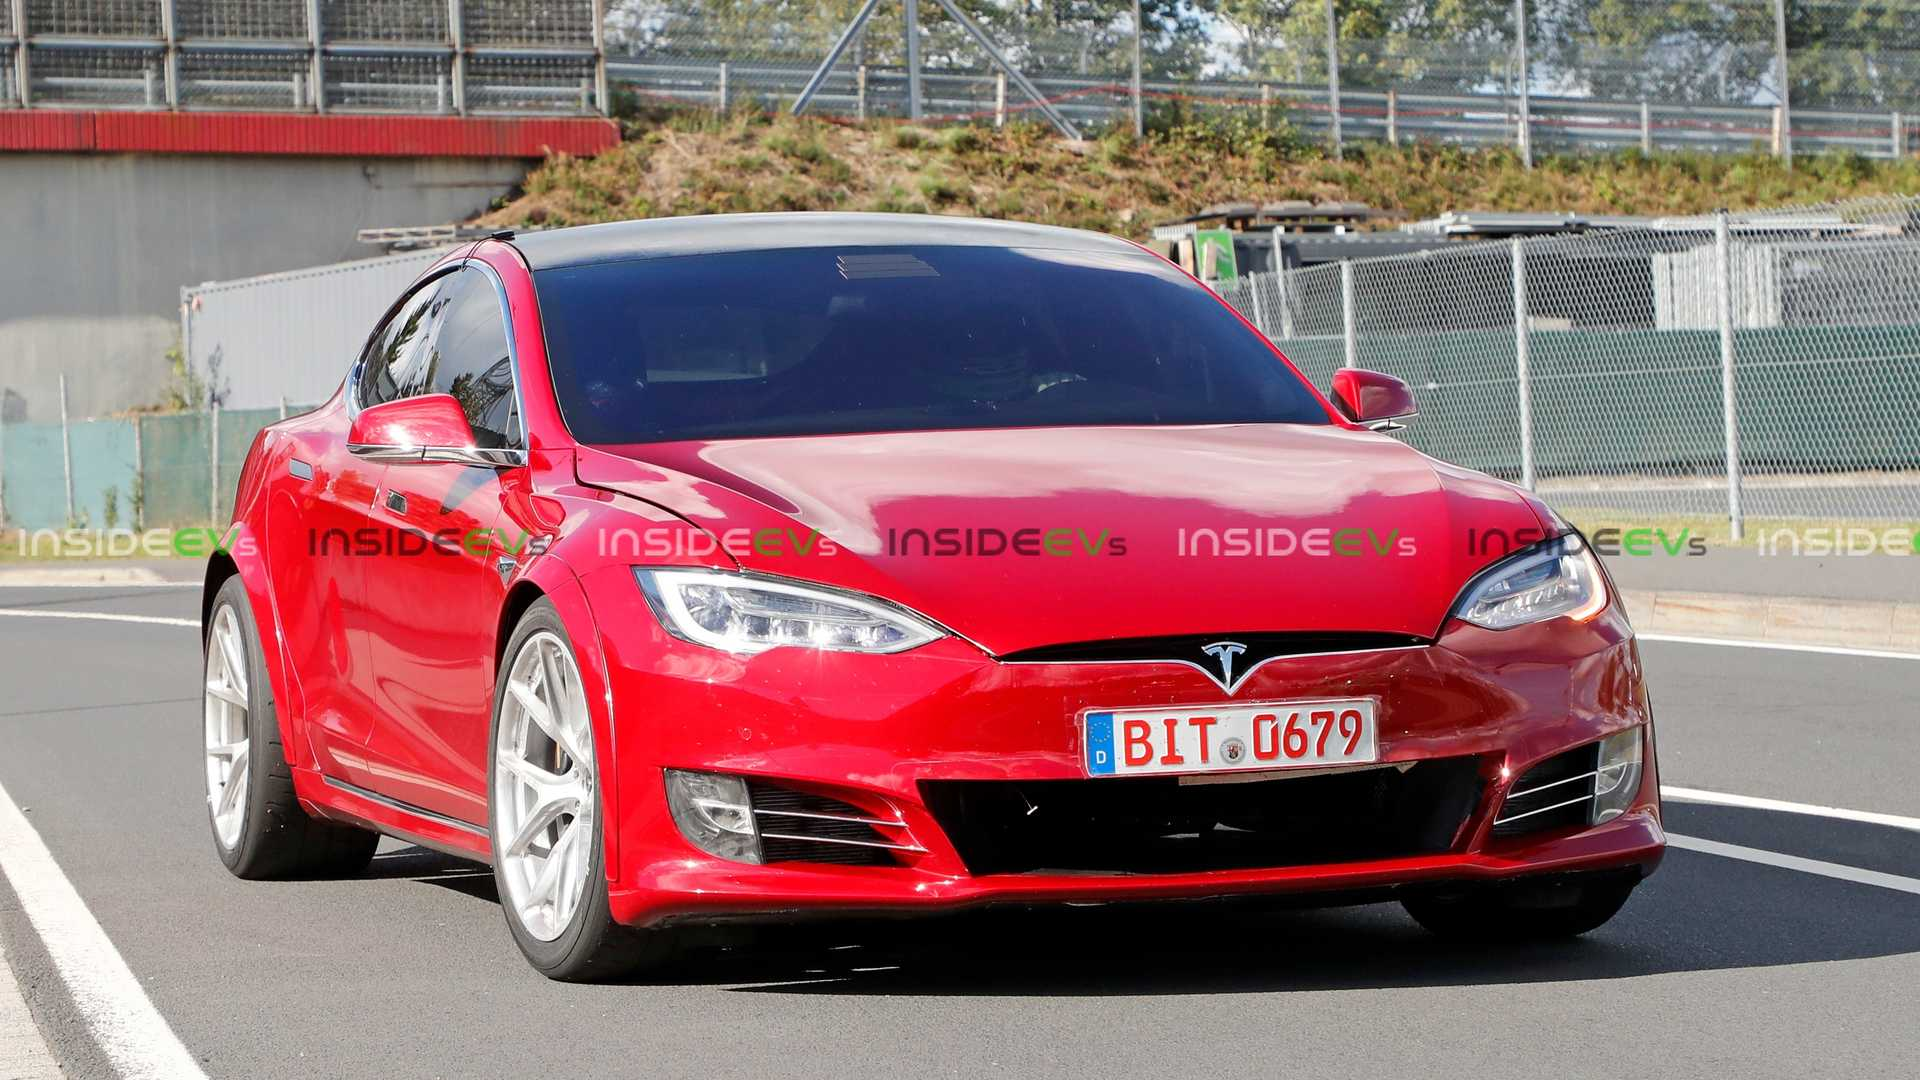 Tesla Model S Plaid reportedly tops Taycan 'Ring time with ease